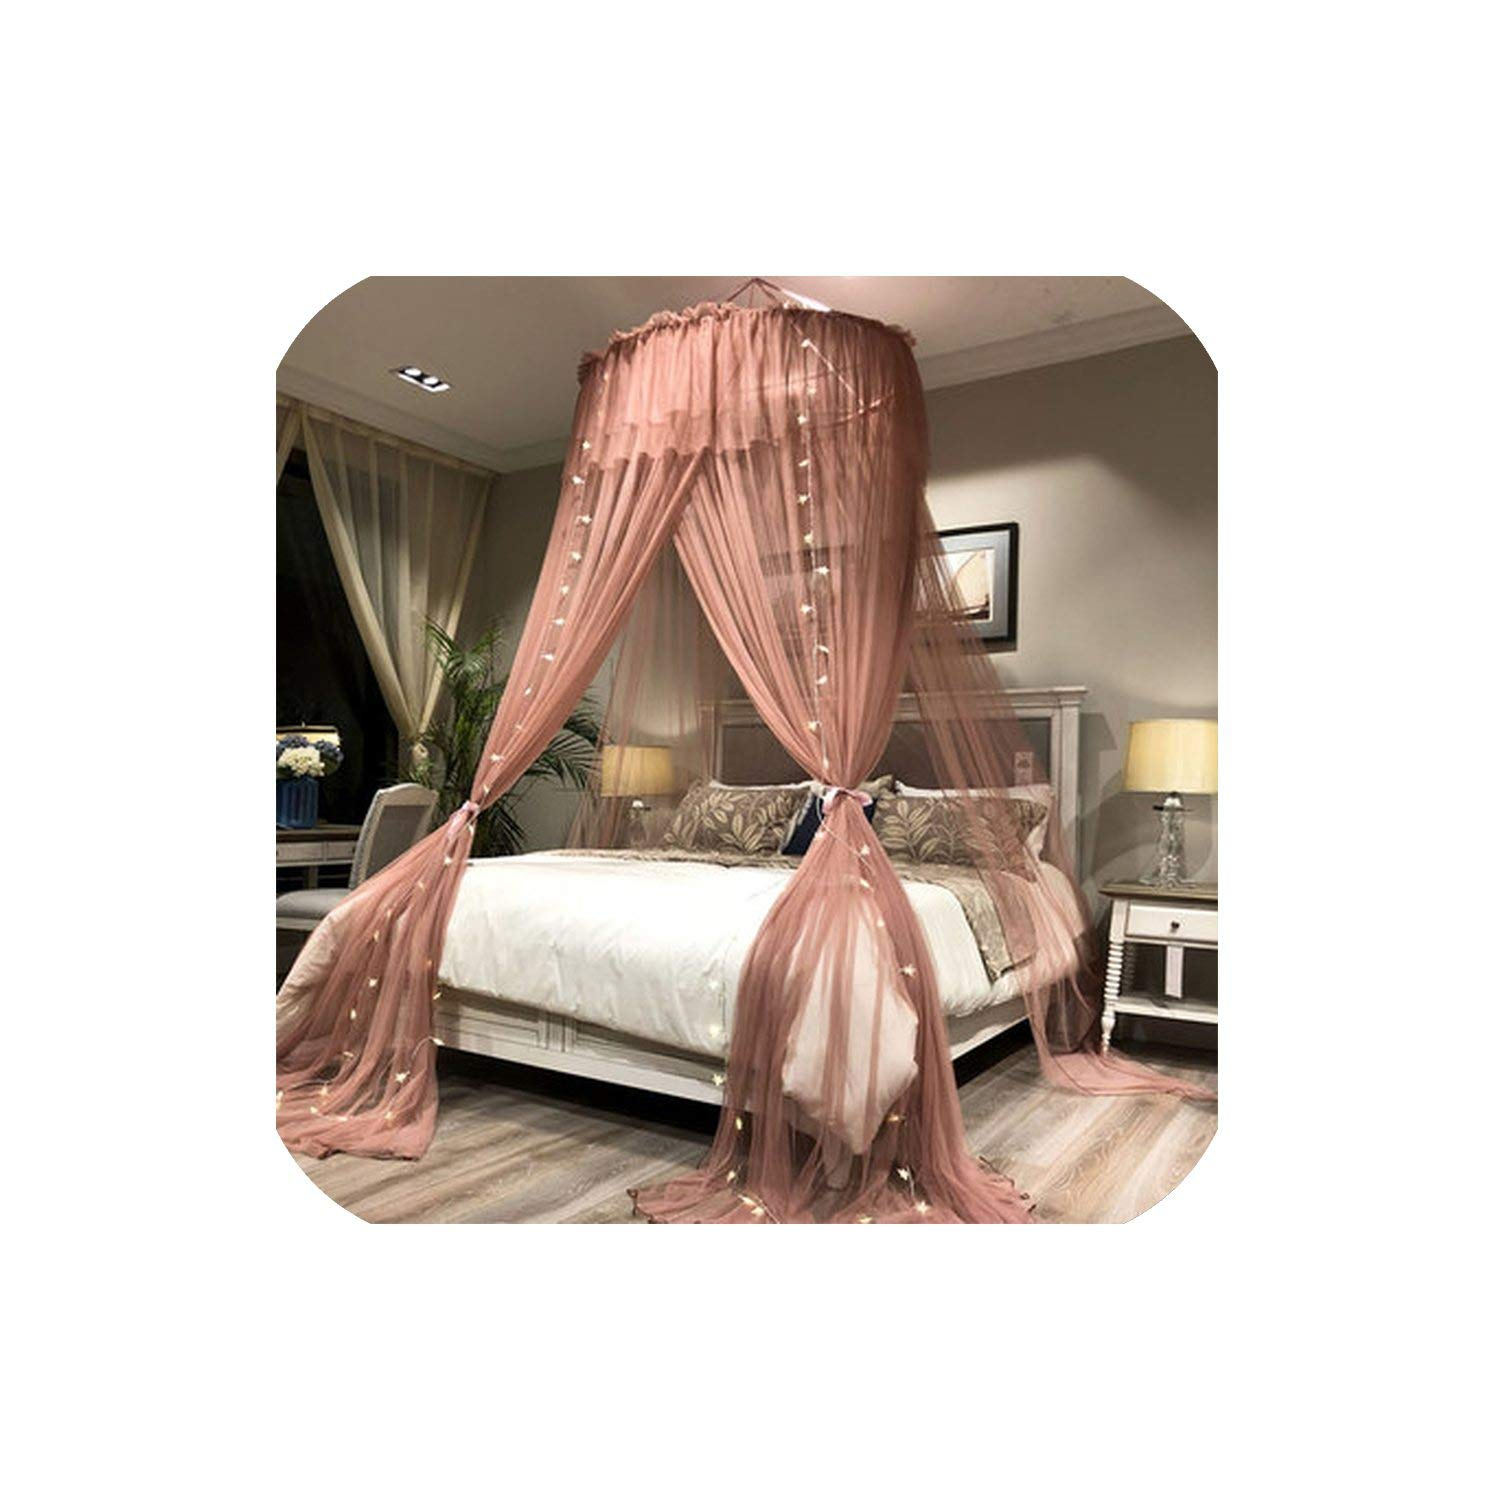 Princesshung Dome Mosquito Net Round Lace Curtain for Home Textile Bed Canopy Crib Polyester Mesh Tent Girls,Pale Mauve,1.2M (4 Feet) Bed